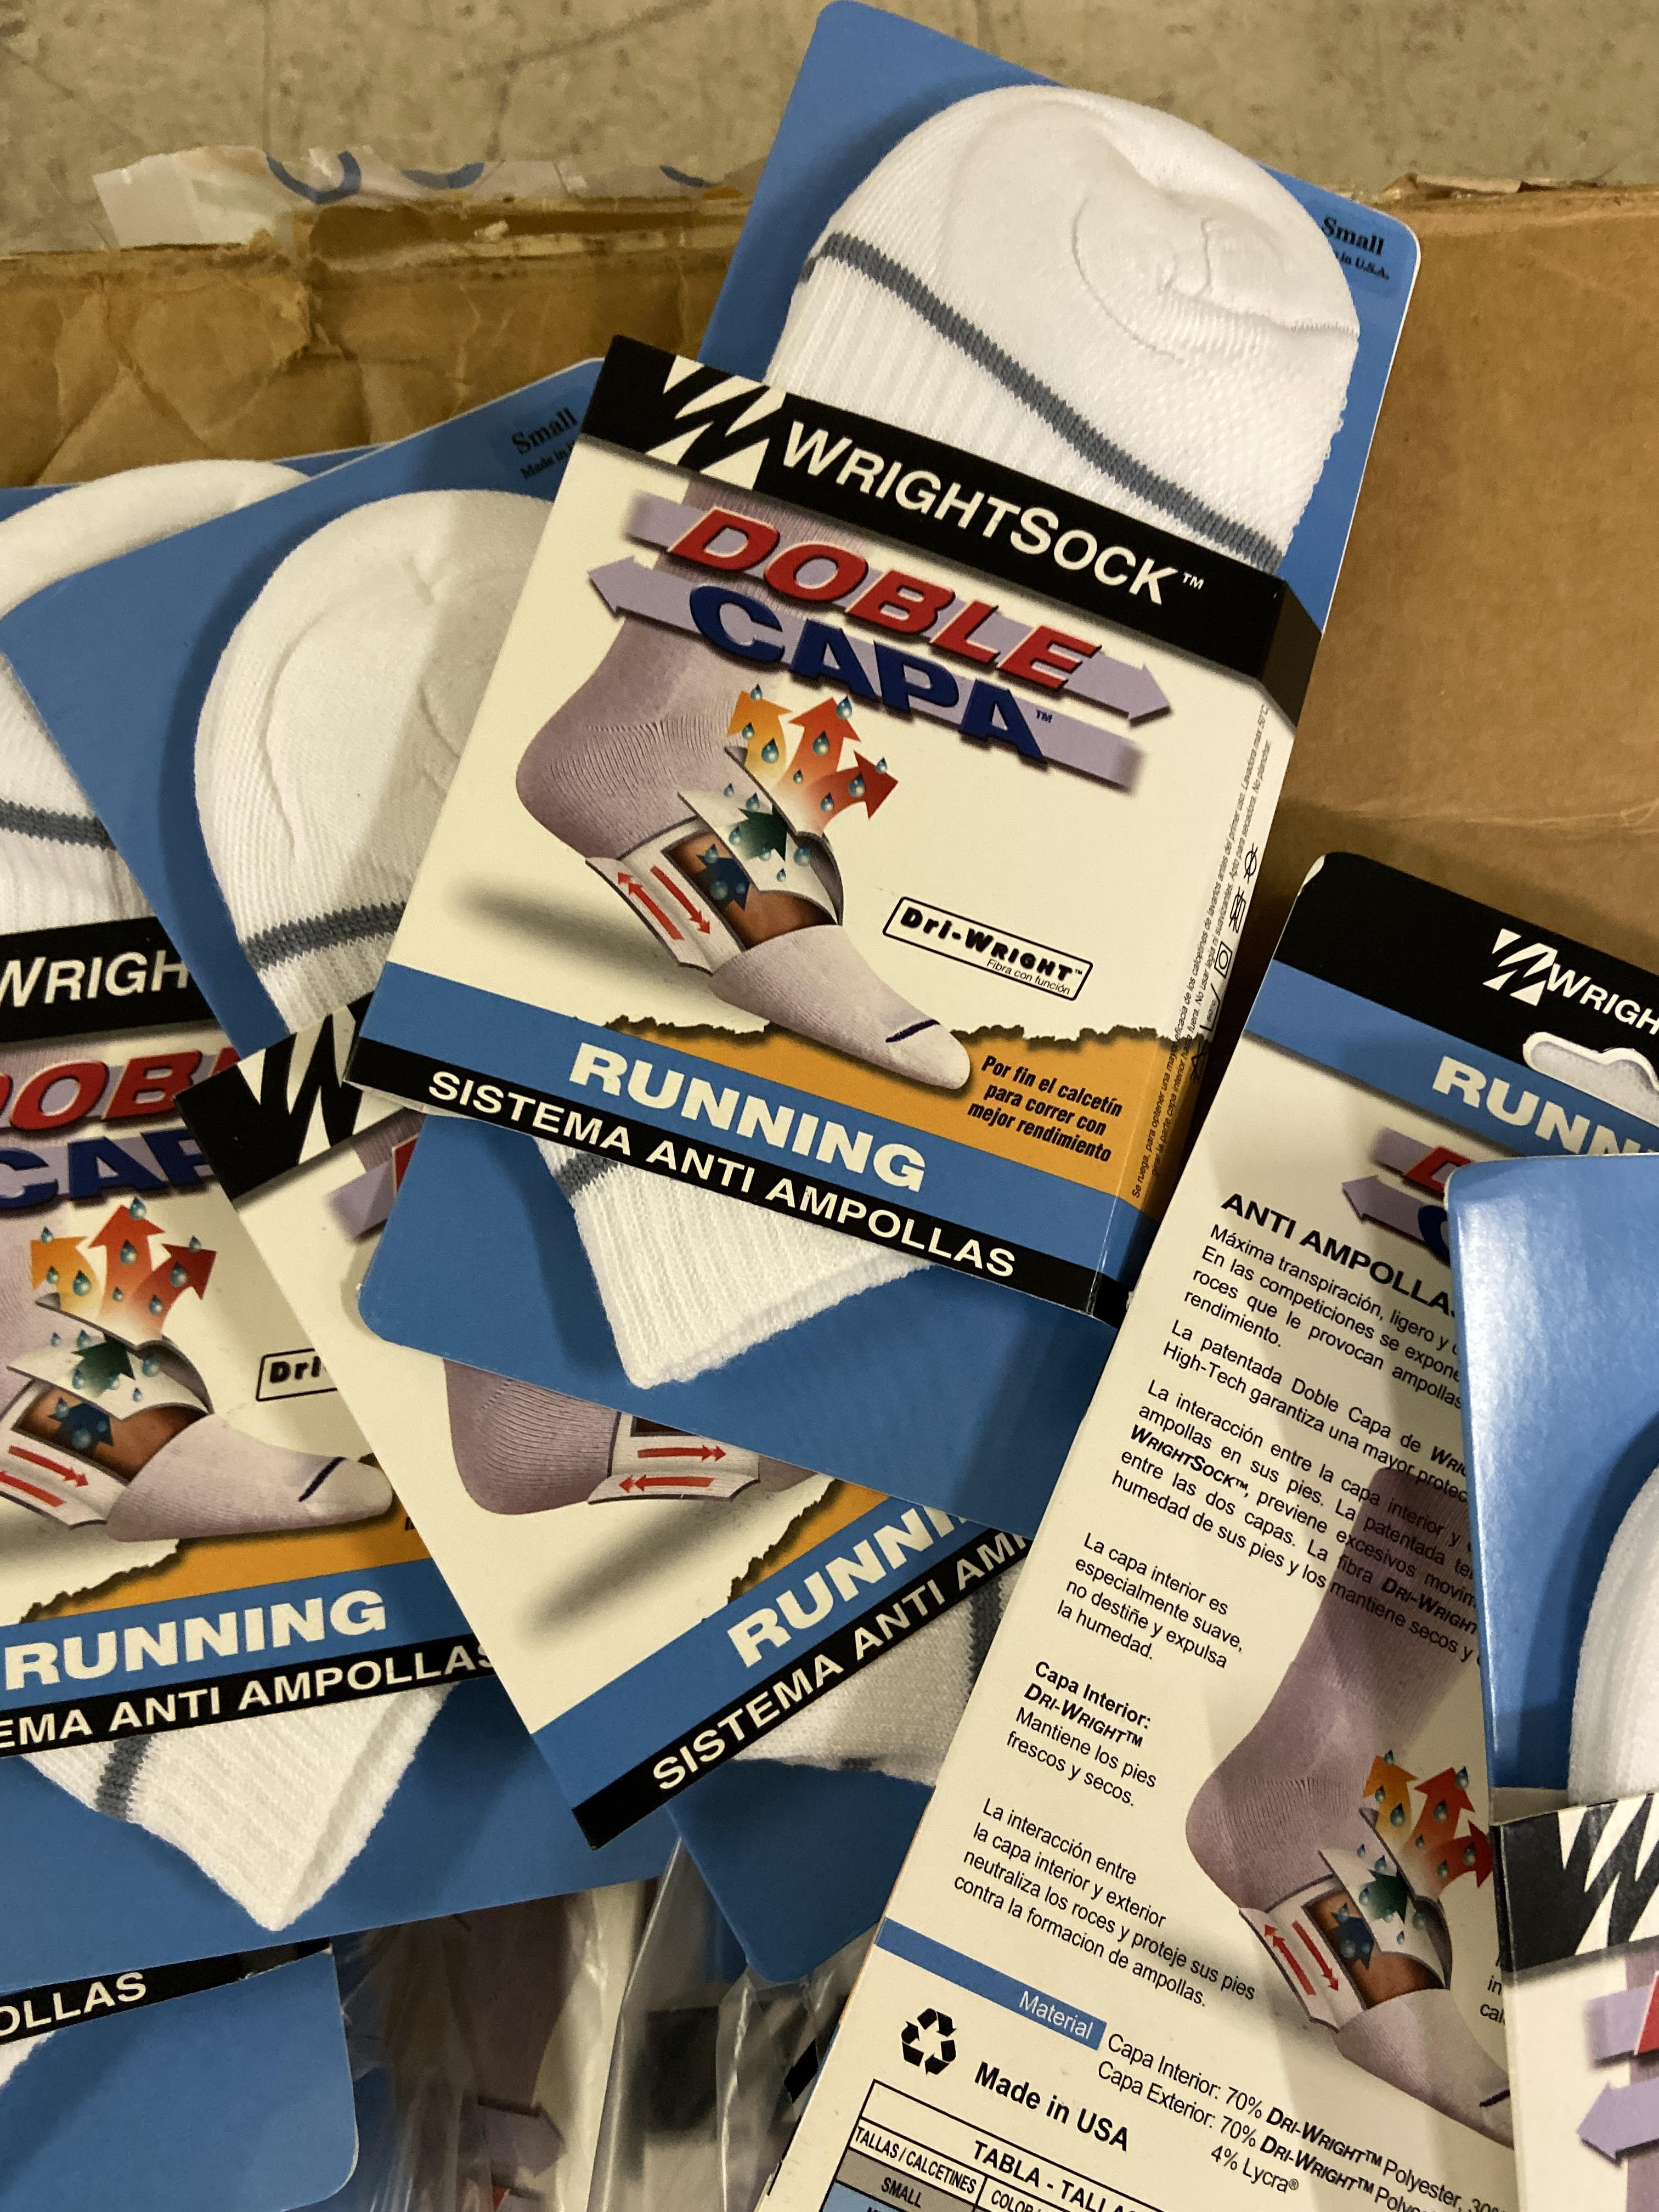 250+ packs of New Socks, Wrightsock Running, Double Layer, White with Gray Stripe - Image 2 of 3